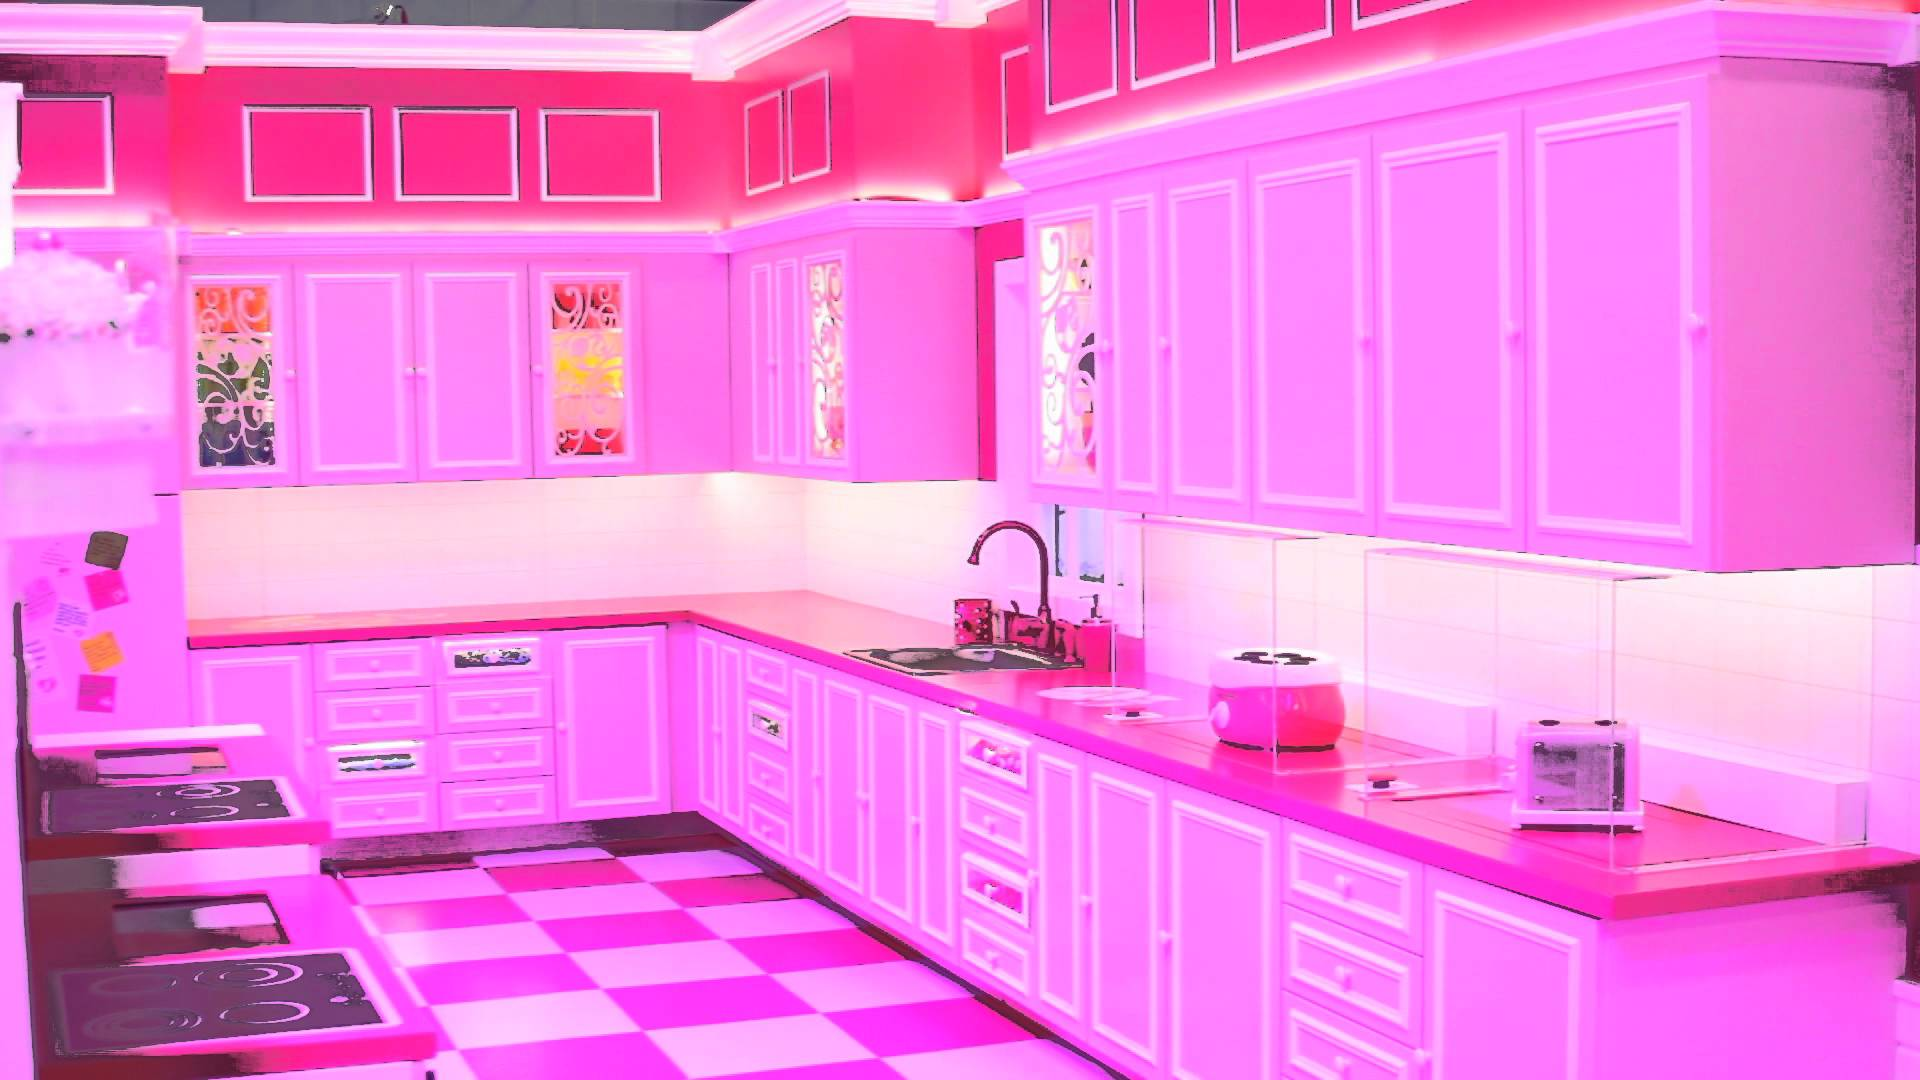 The barbie dreamhouse experience south florida finds